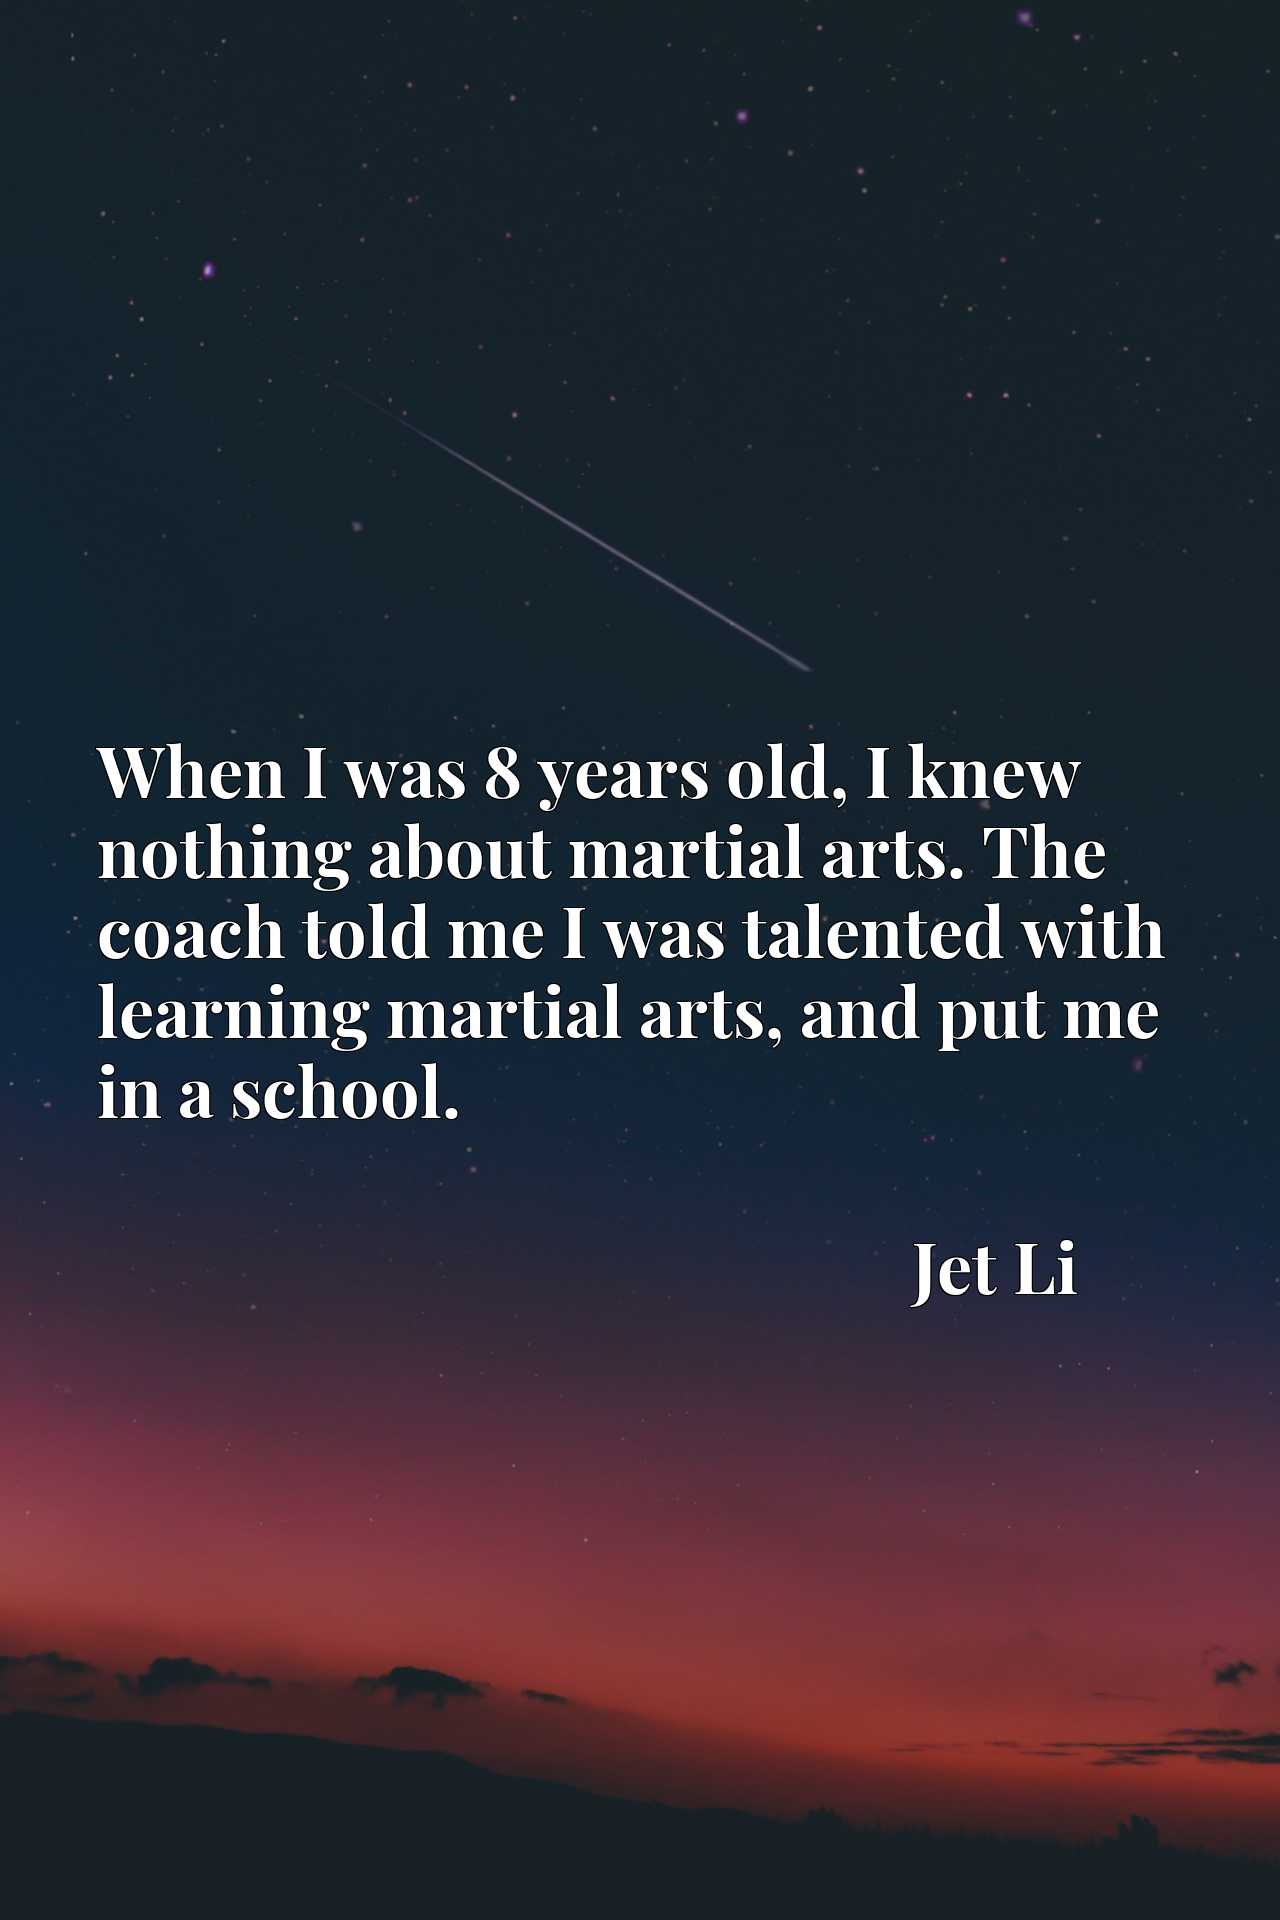 When I was 8 years old, I knew nothing about martial arts. The coach told me I was talented with learning martial arts, and put me in a school.